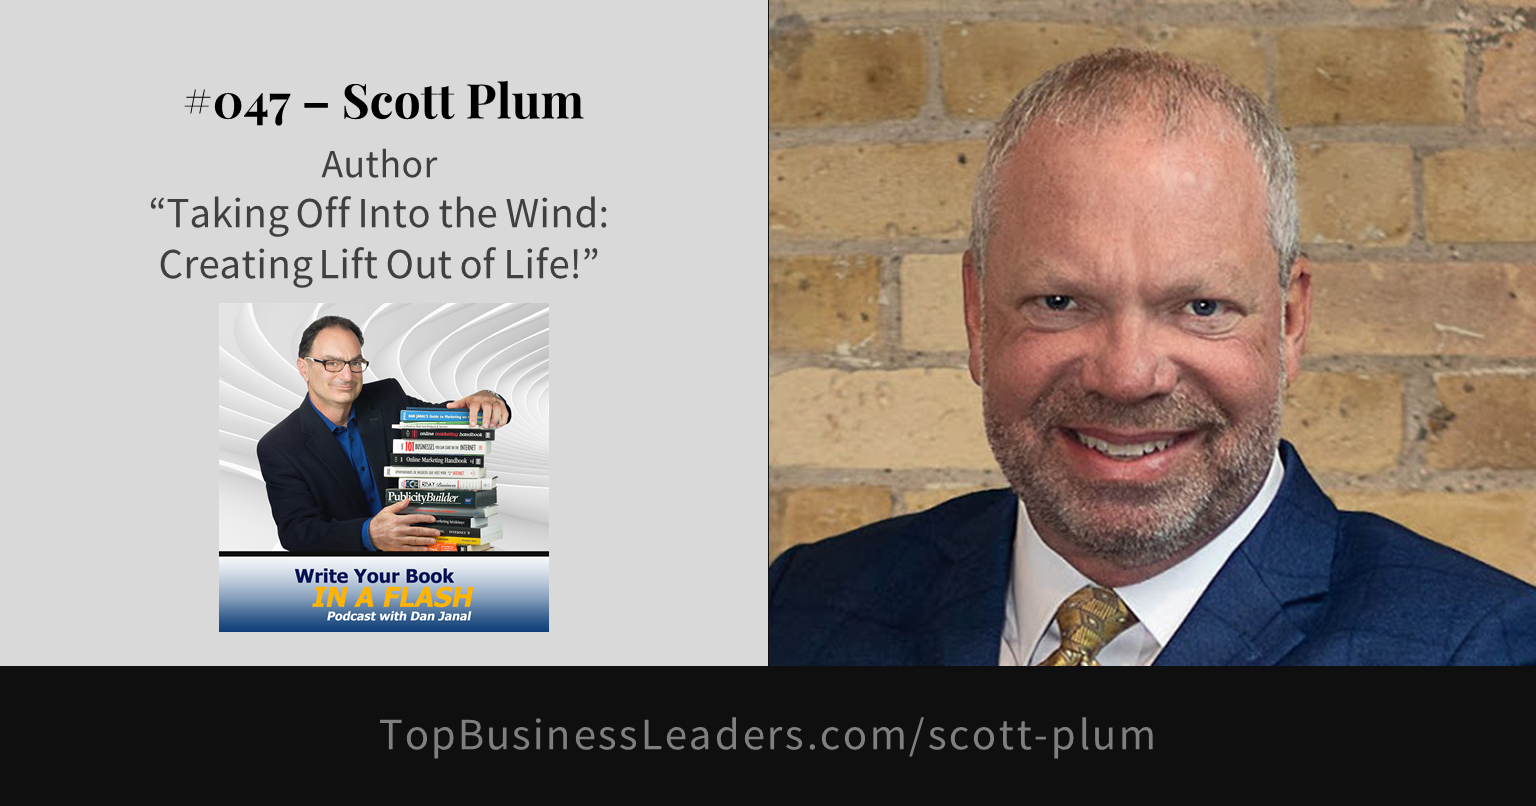 scott-plum-author-taking-off-into-the-wind-creating-lift-out-of-life